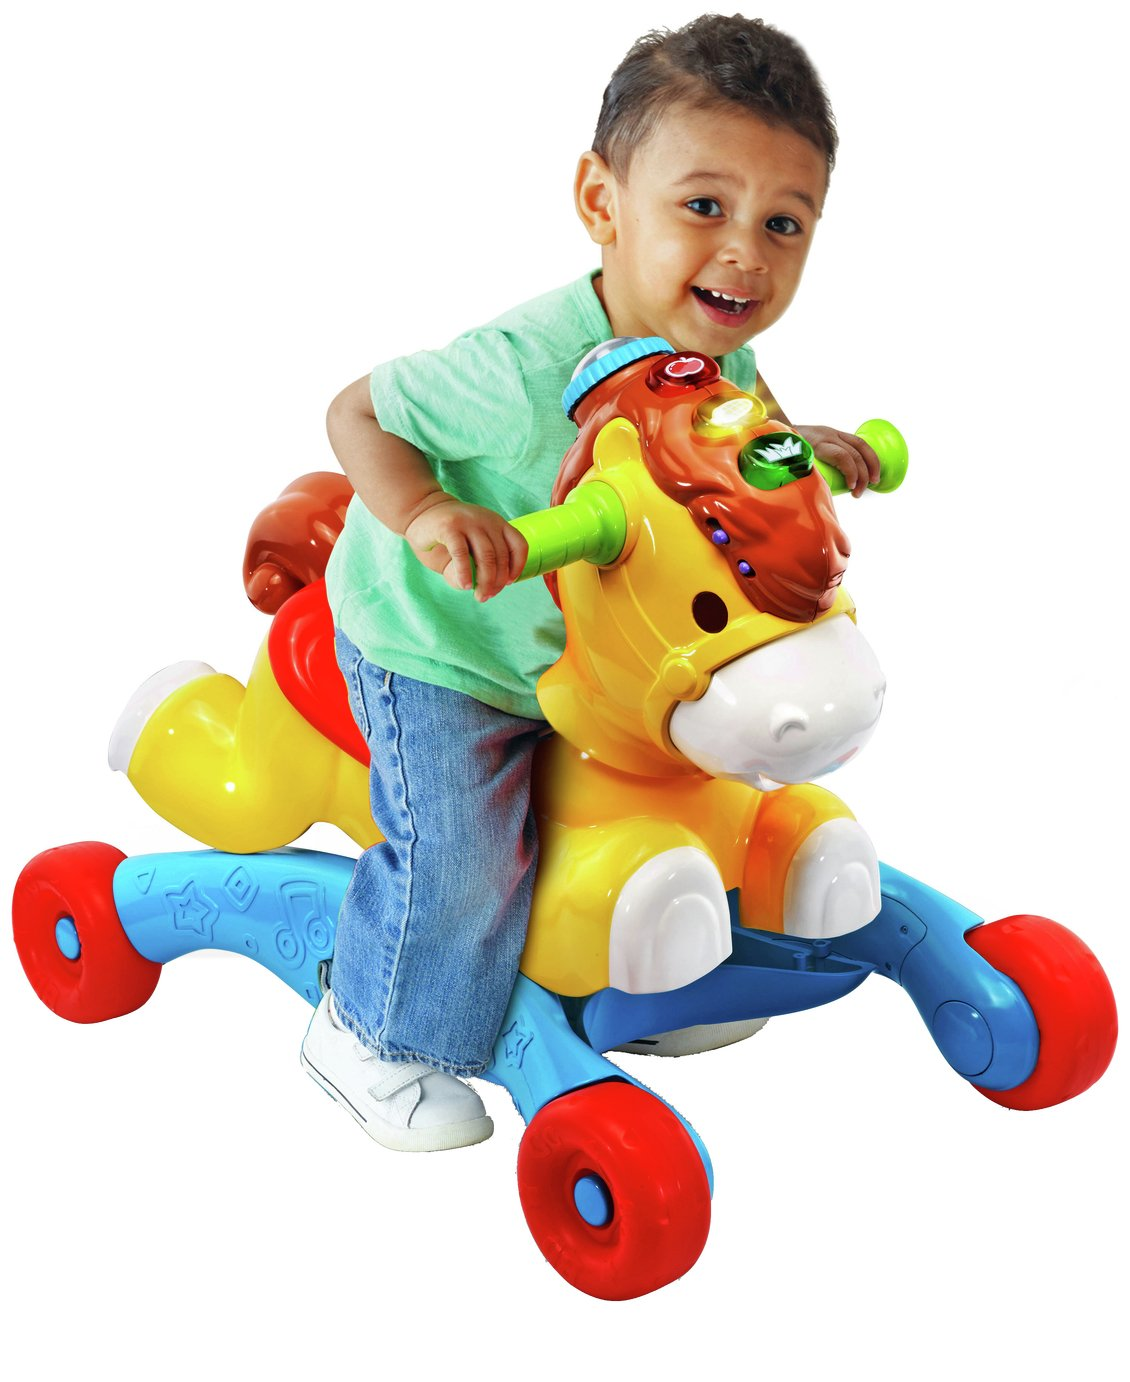 Image of VTech Rock and Ride Horse